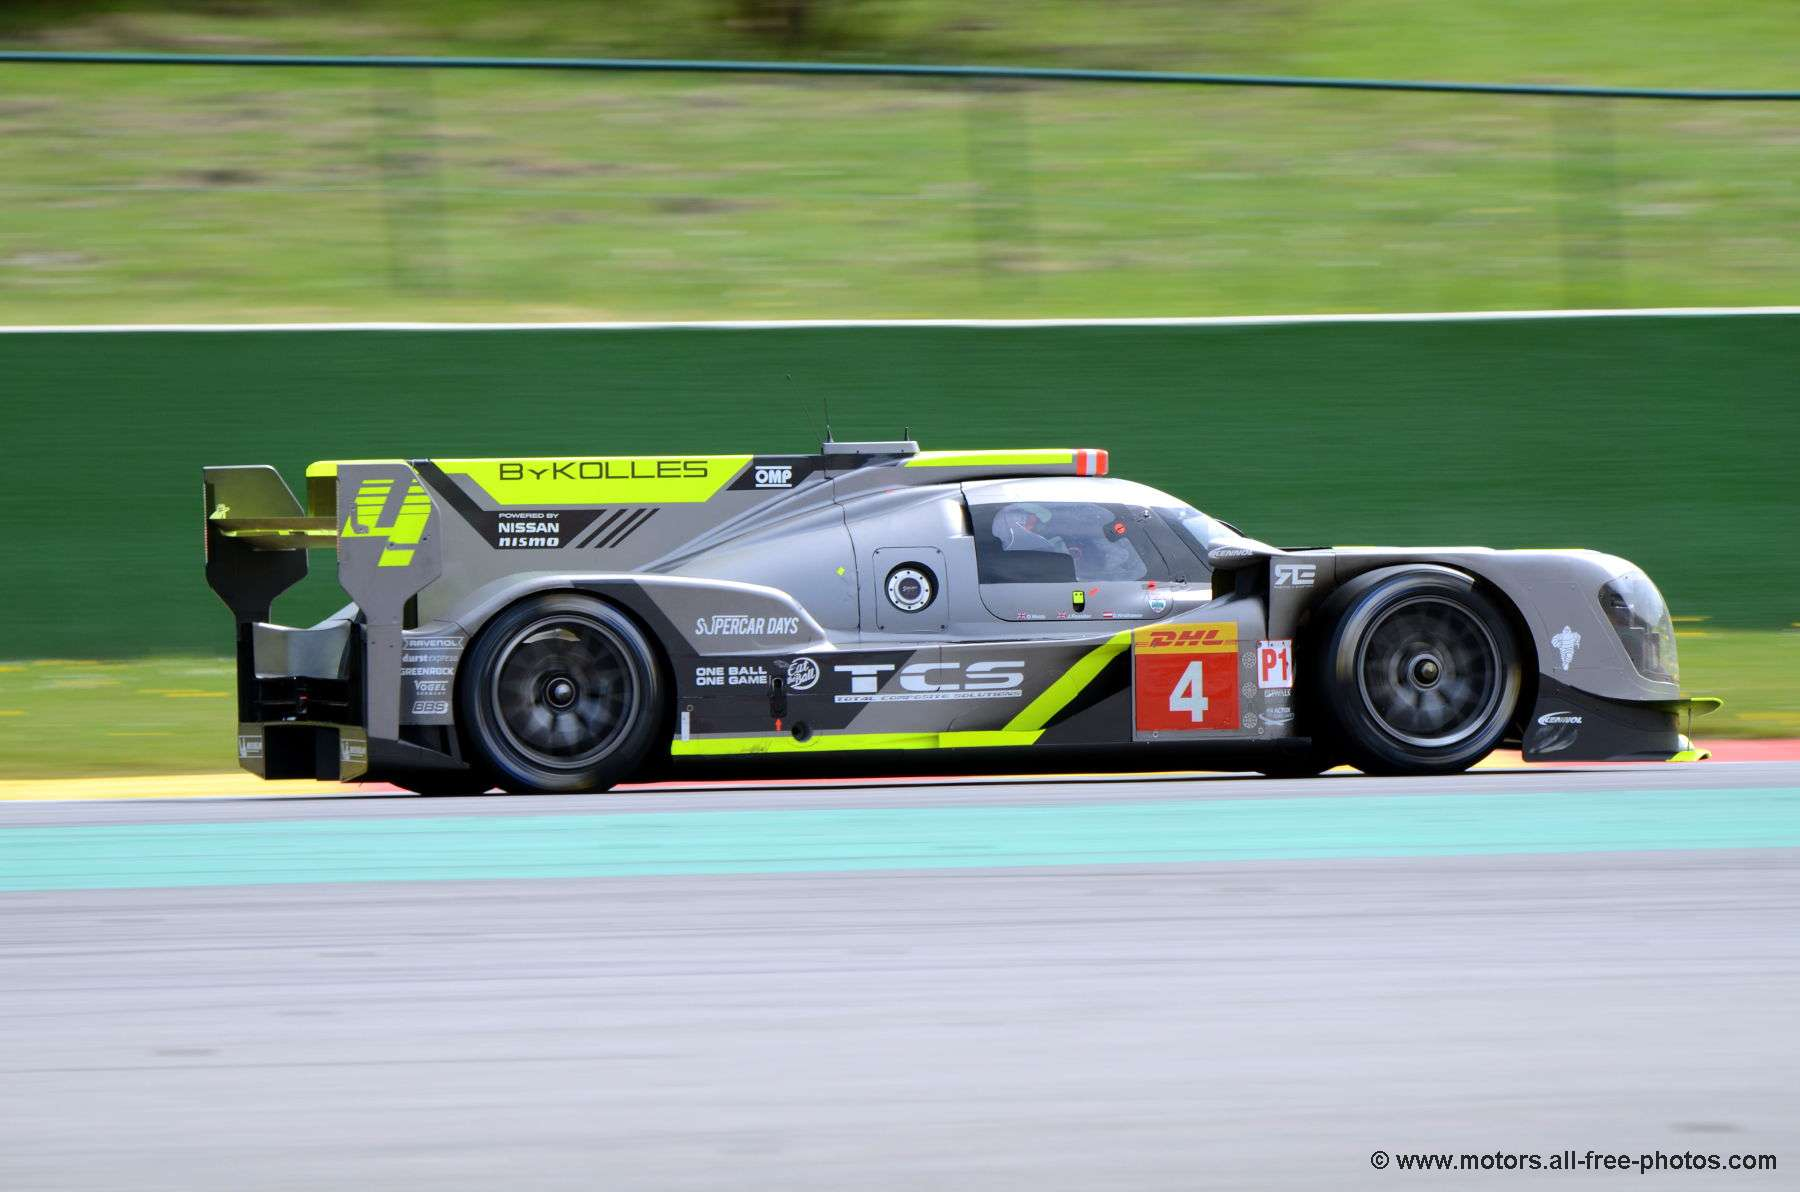 ENSO CLM P1/01-Nismo - Team Bykoles Racing